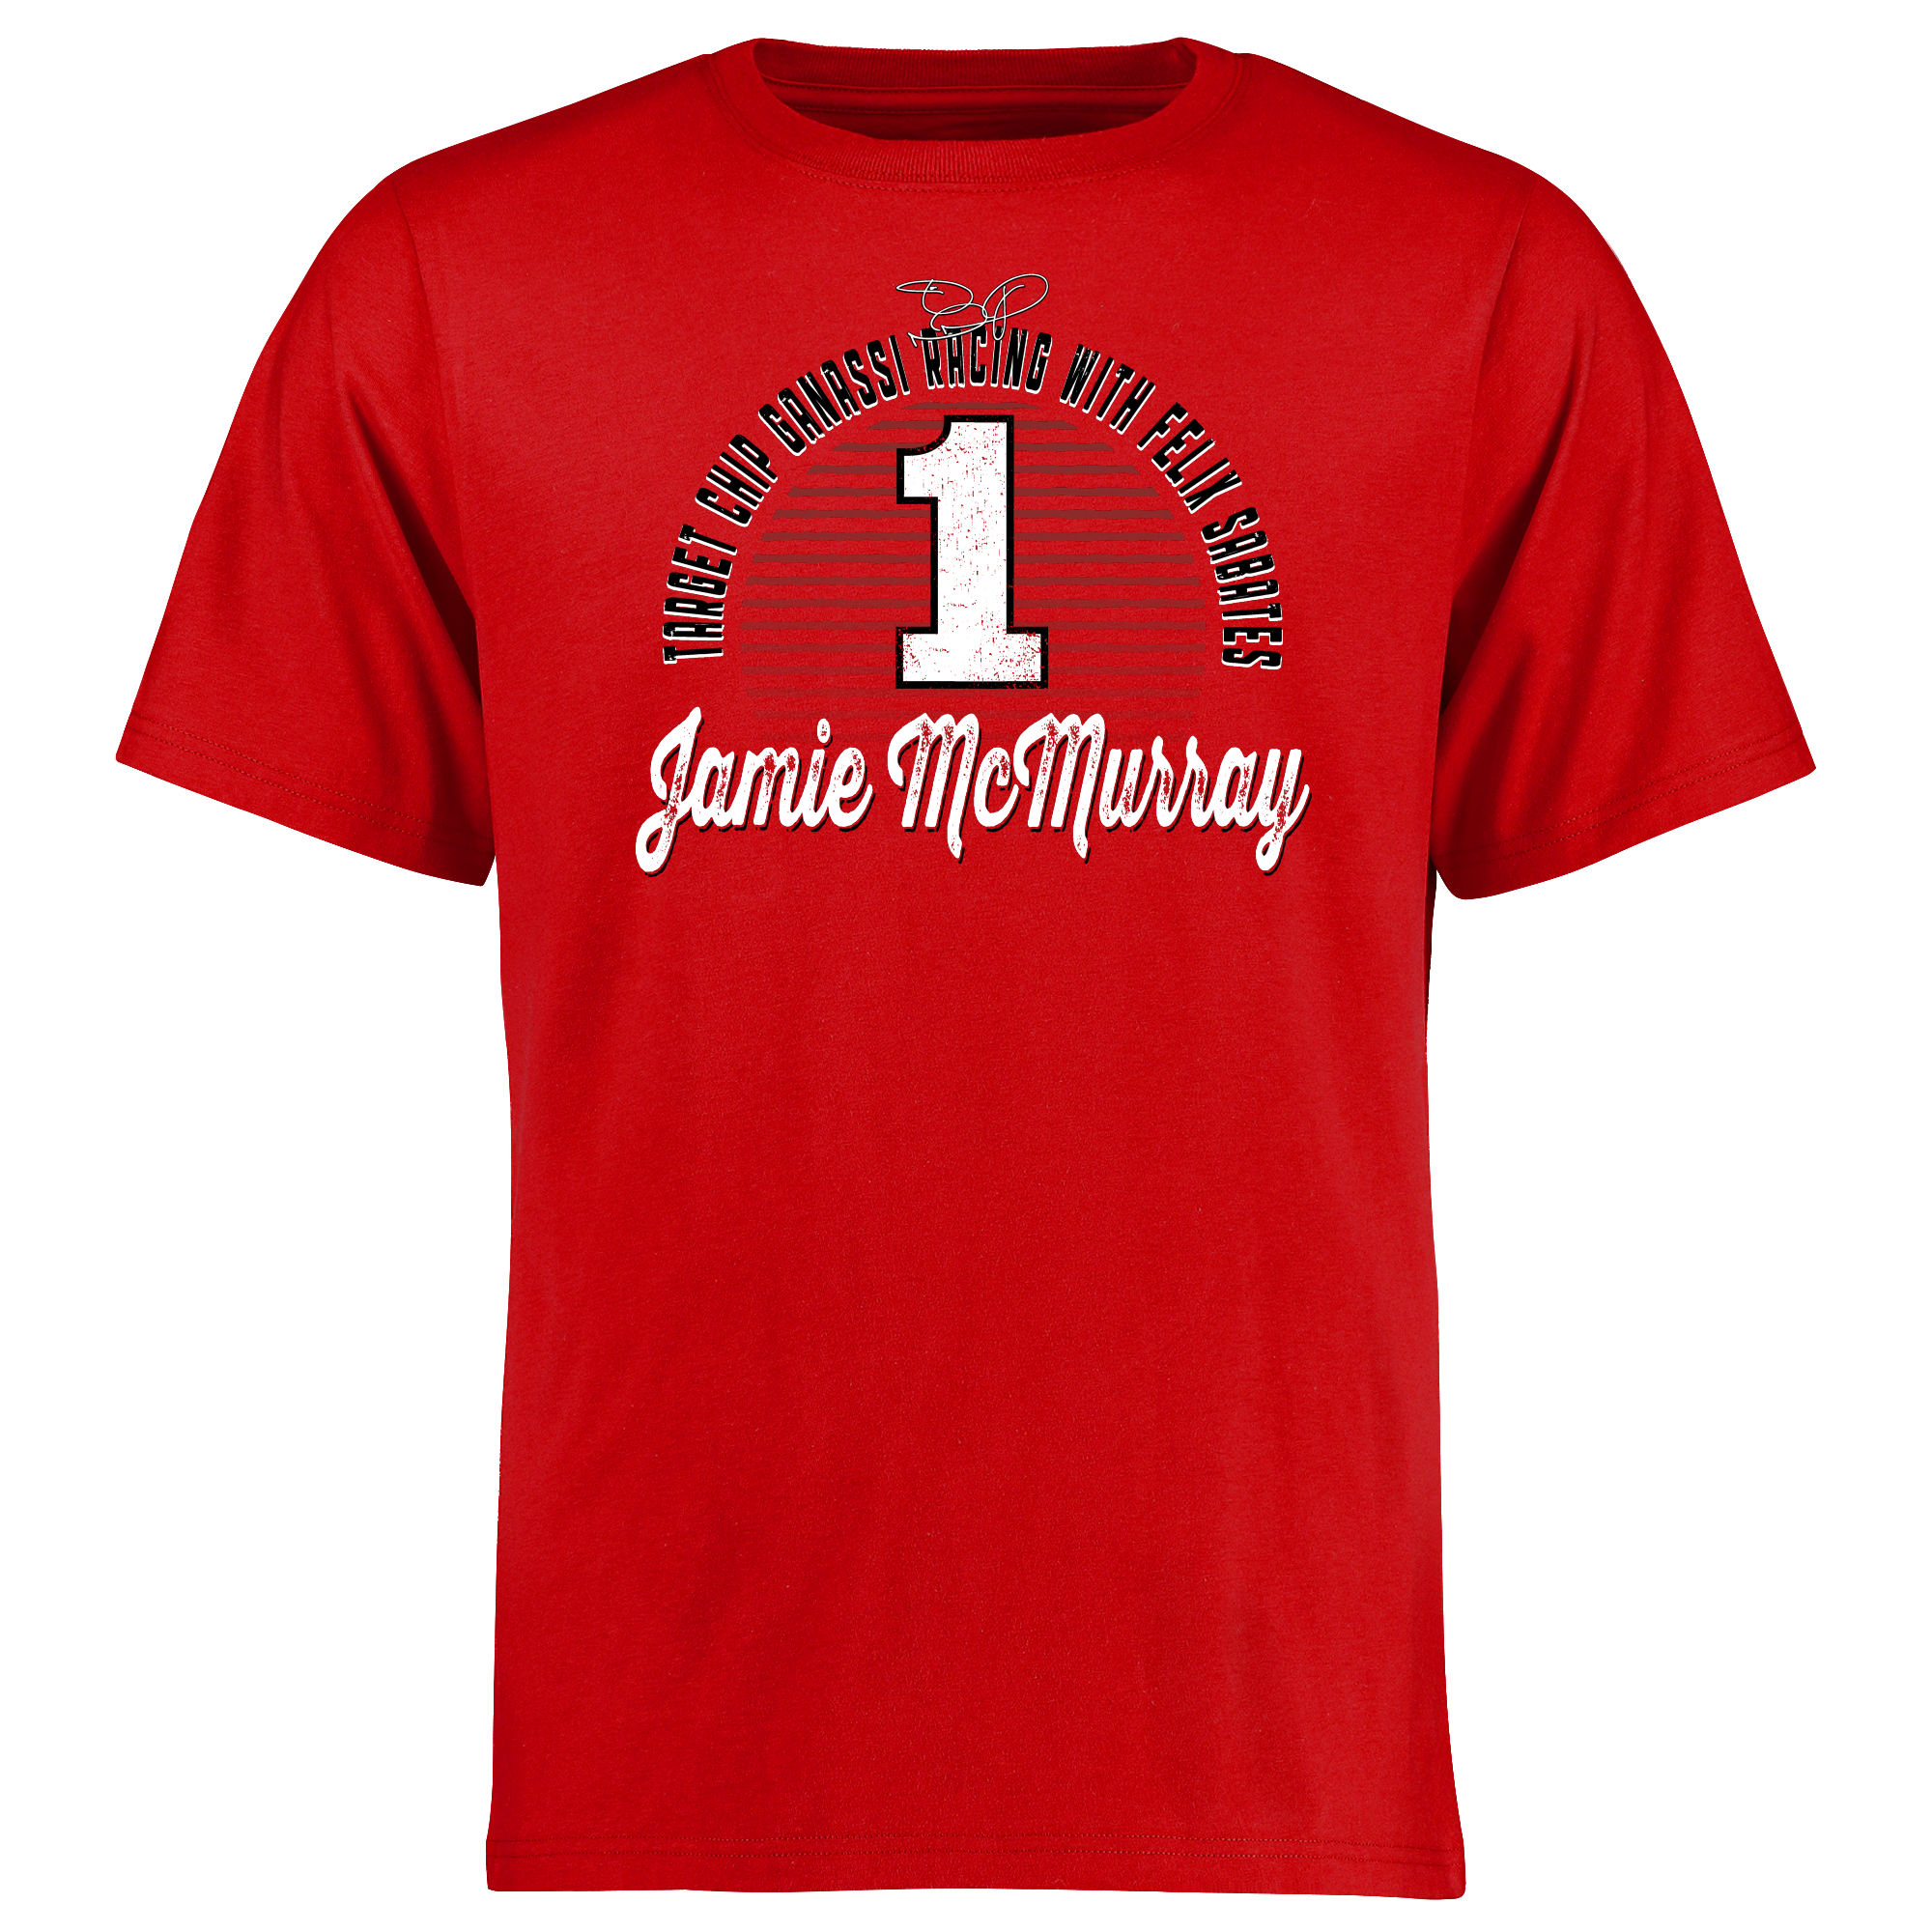 Jamie McMurray Race Day T-Shirt - Red